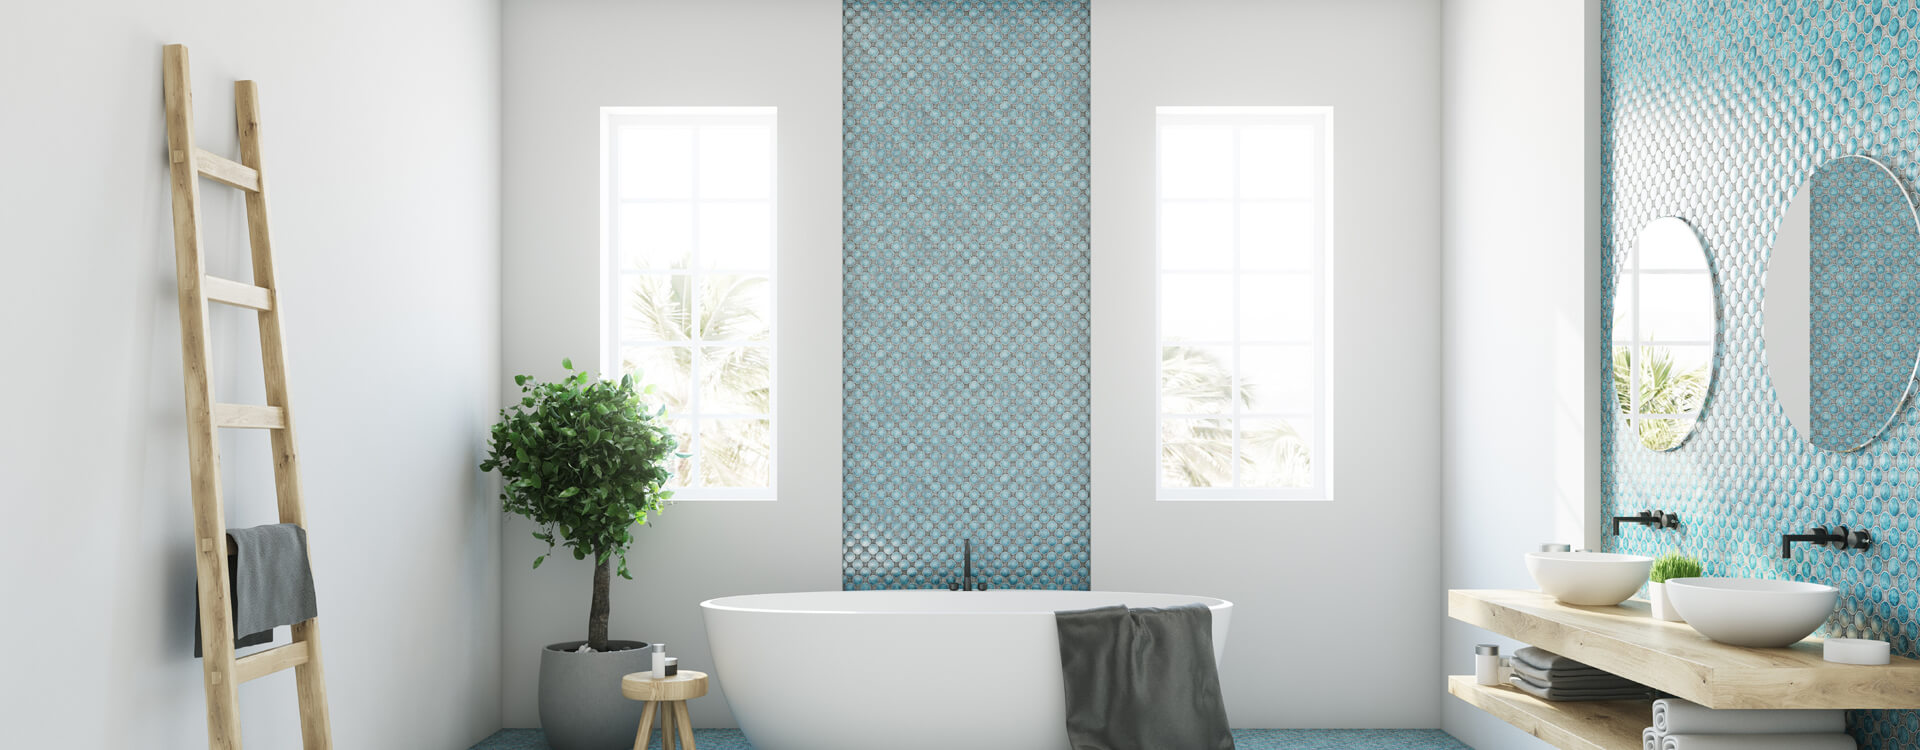 What You Need To Know About Tiling Your Bathrooms - GILSA USA